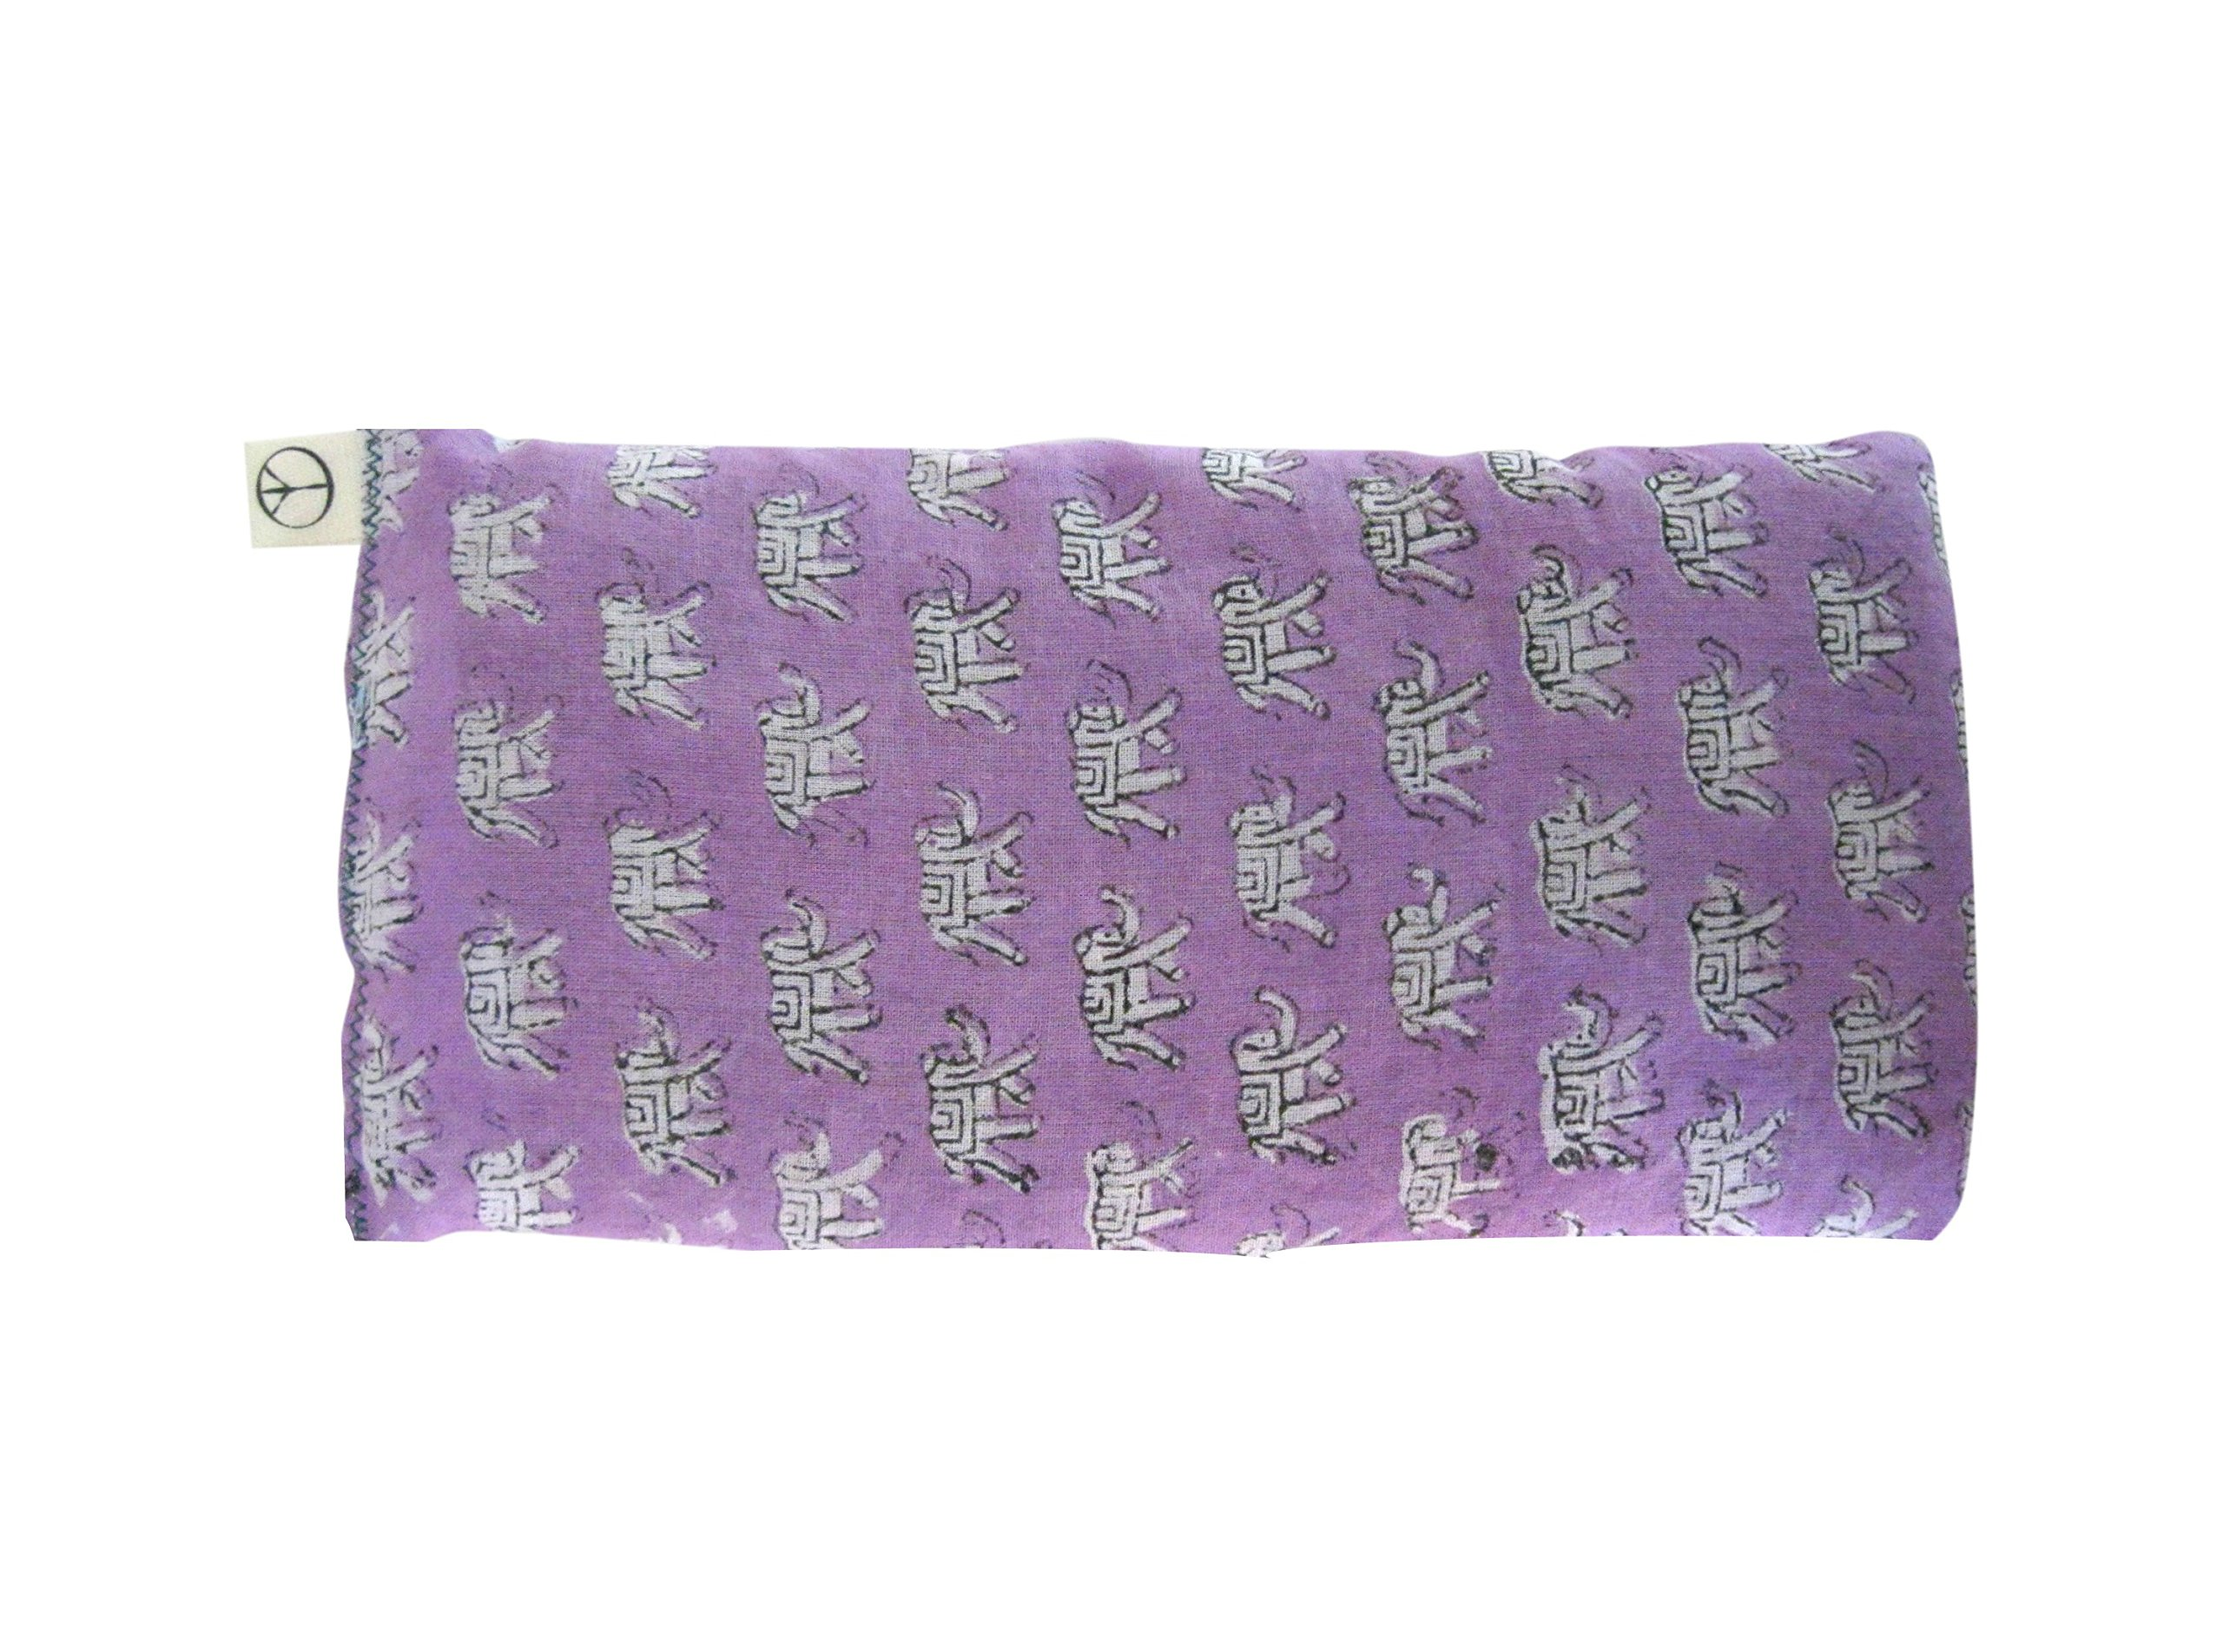 Scented Eye Pillows - Pack of (4) - Soft Cotton 4 x 8.5 - Organic Lavender Flax Seed - hand block print India - pink purple gray teal green elephant by Peacegoods (Image #5)